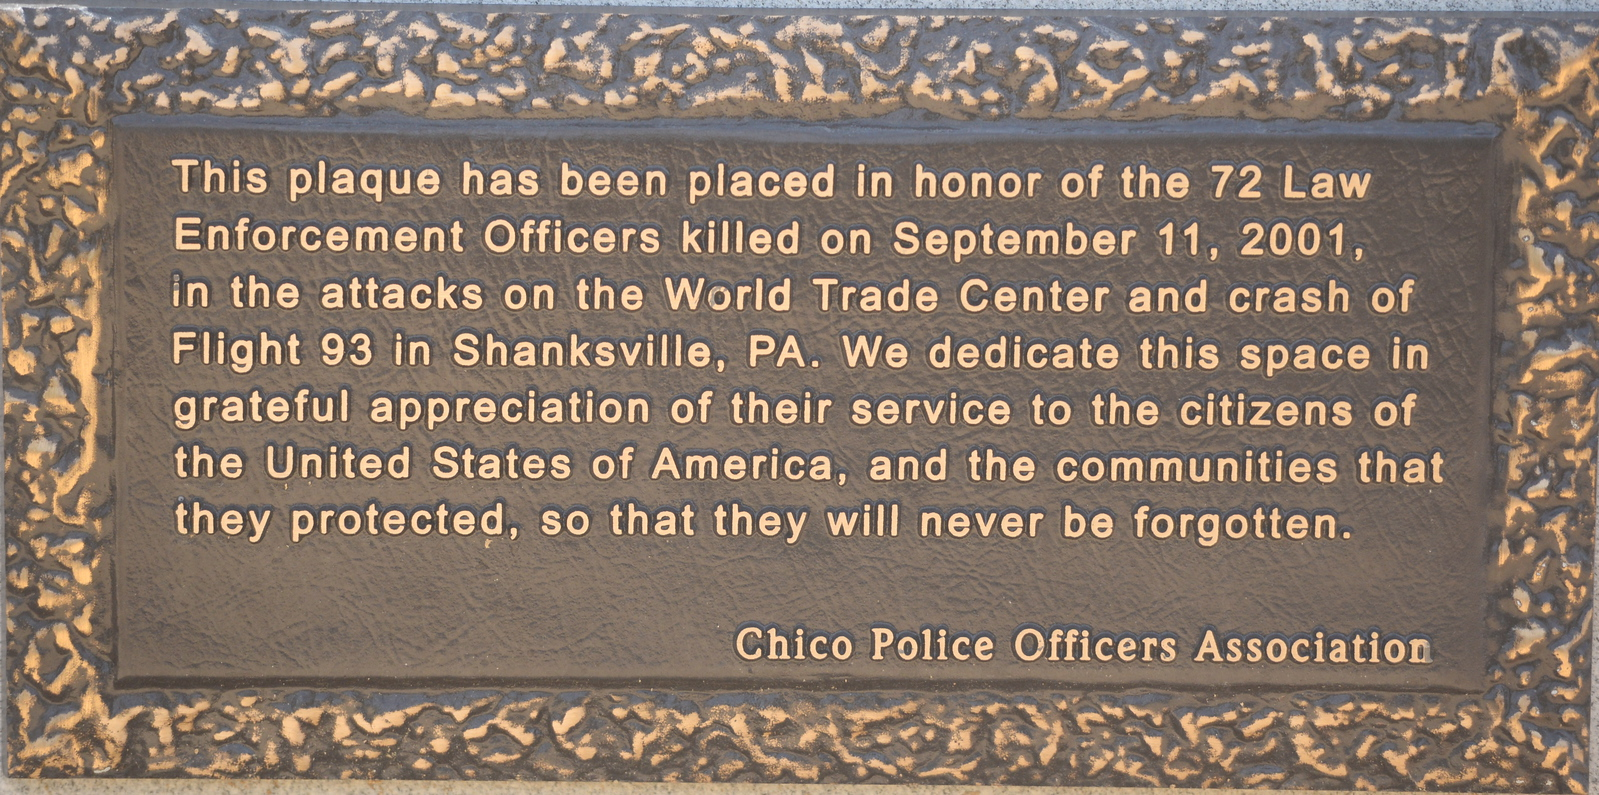 A plaque is seen honoring the 72 Law Enforcement Officers killed on Sept. 11, 2001 during the attacks on the World Trade Center and Flight 93 in Shanksville, PA during the 9/11 memorial observance at Chico Fire Station Five on Manzanita Ave. in Chico, Calif. Monday Sept. 11, 2017. (Bill Husa -- Enterprise-Record)